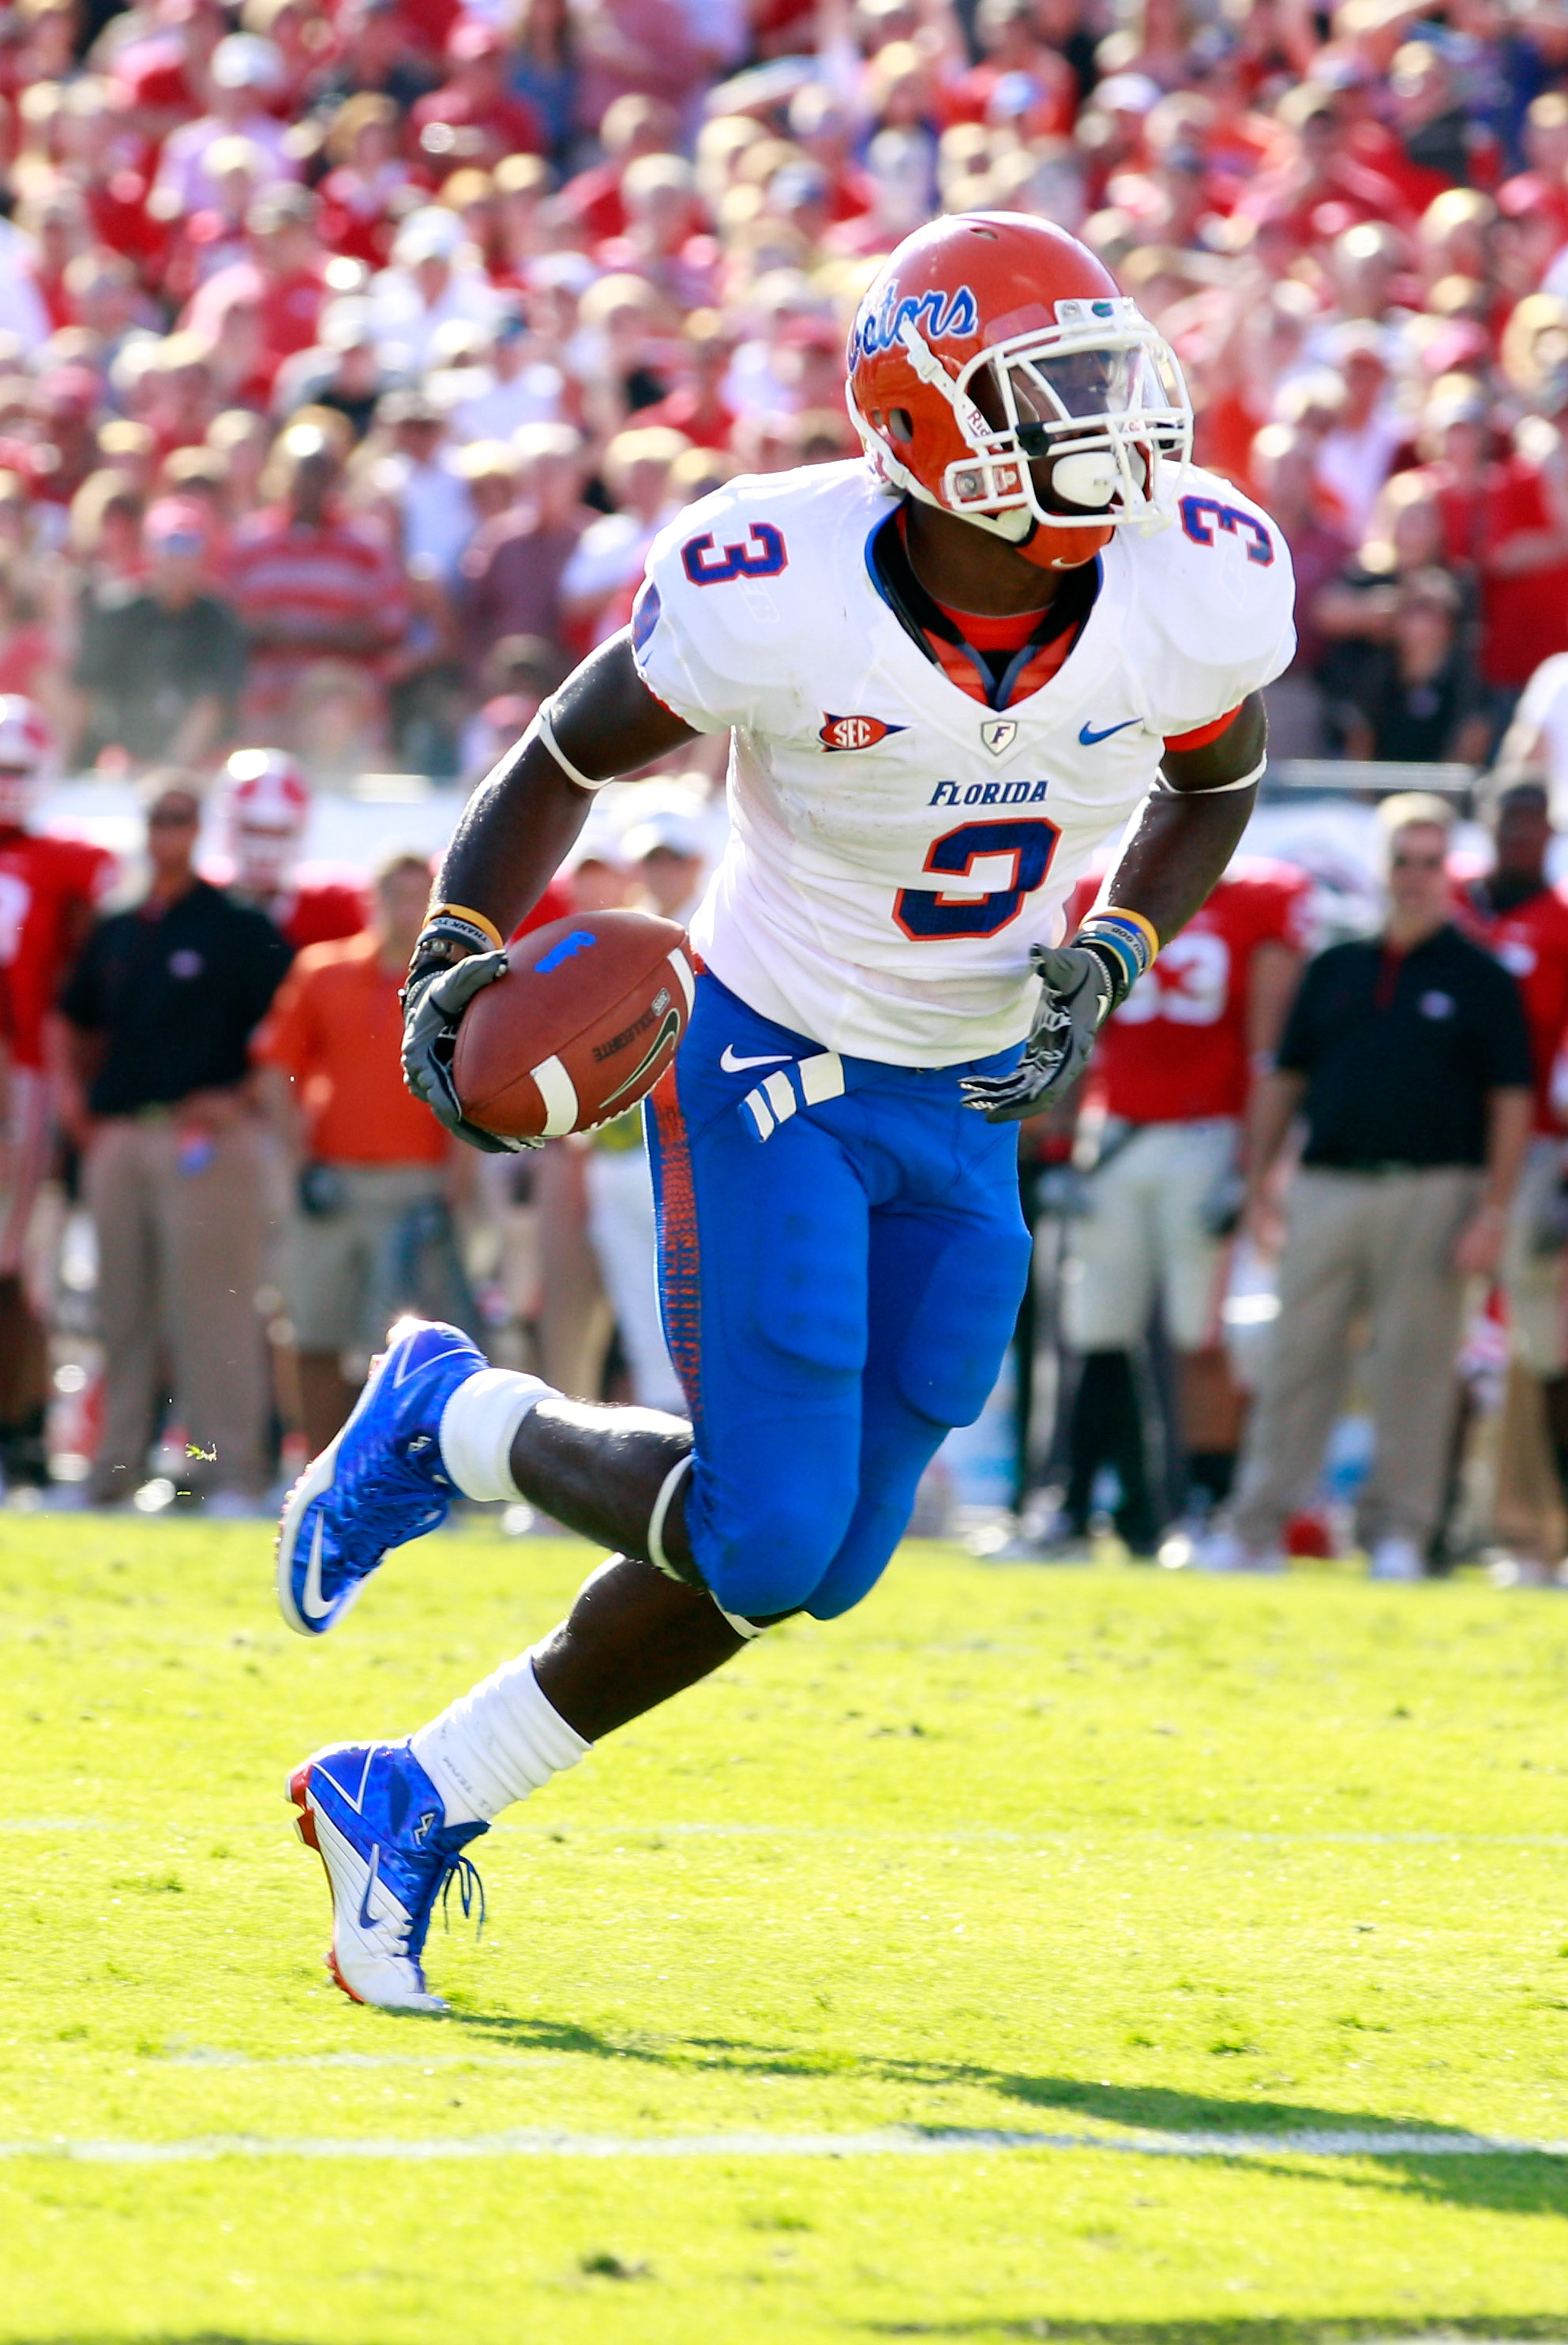 JACKSONVILLE, FL - OCTOBER 30:  Chris Rainey #3 of the Florida Gators runs for a touchdown during the game against the Georgia Bulldogs at EverBank Field on October 30, 2010 in Jacksonville, Florida.  (Photo by Sam Greenwood/Getty Images)